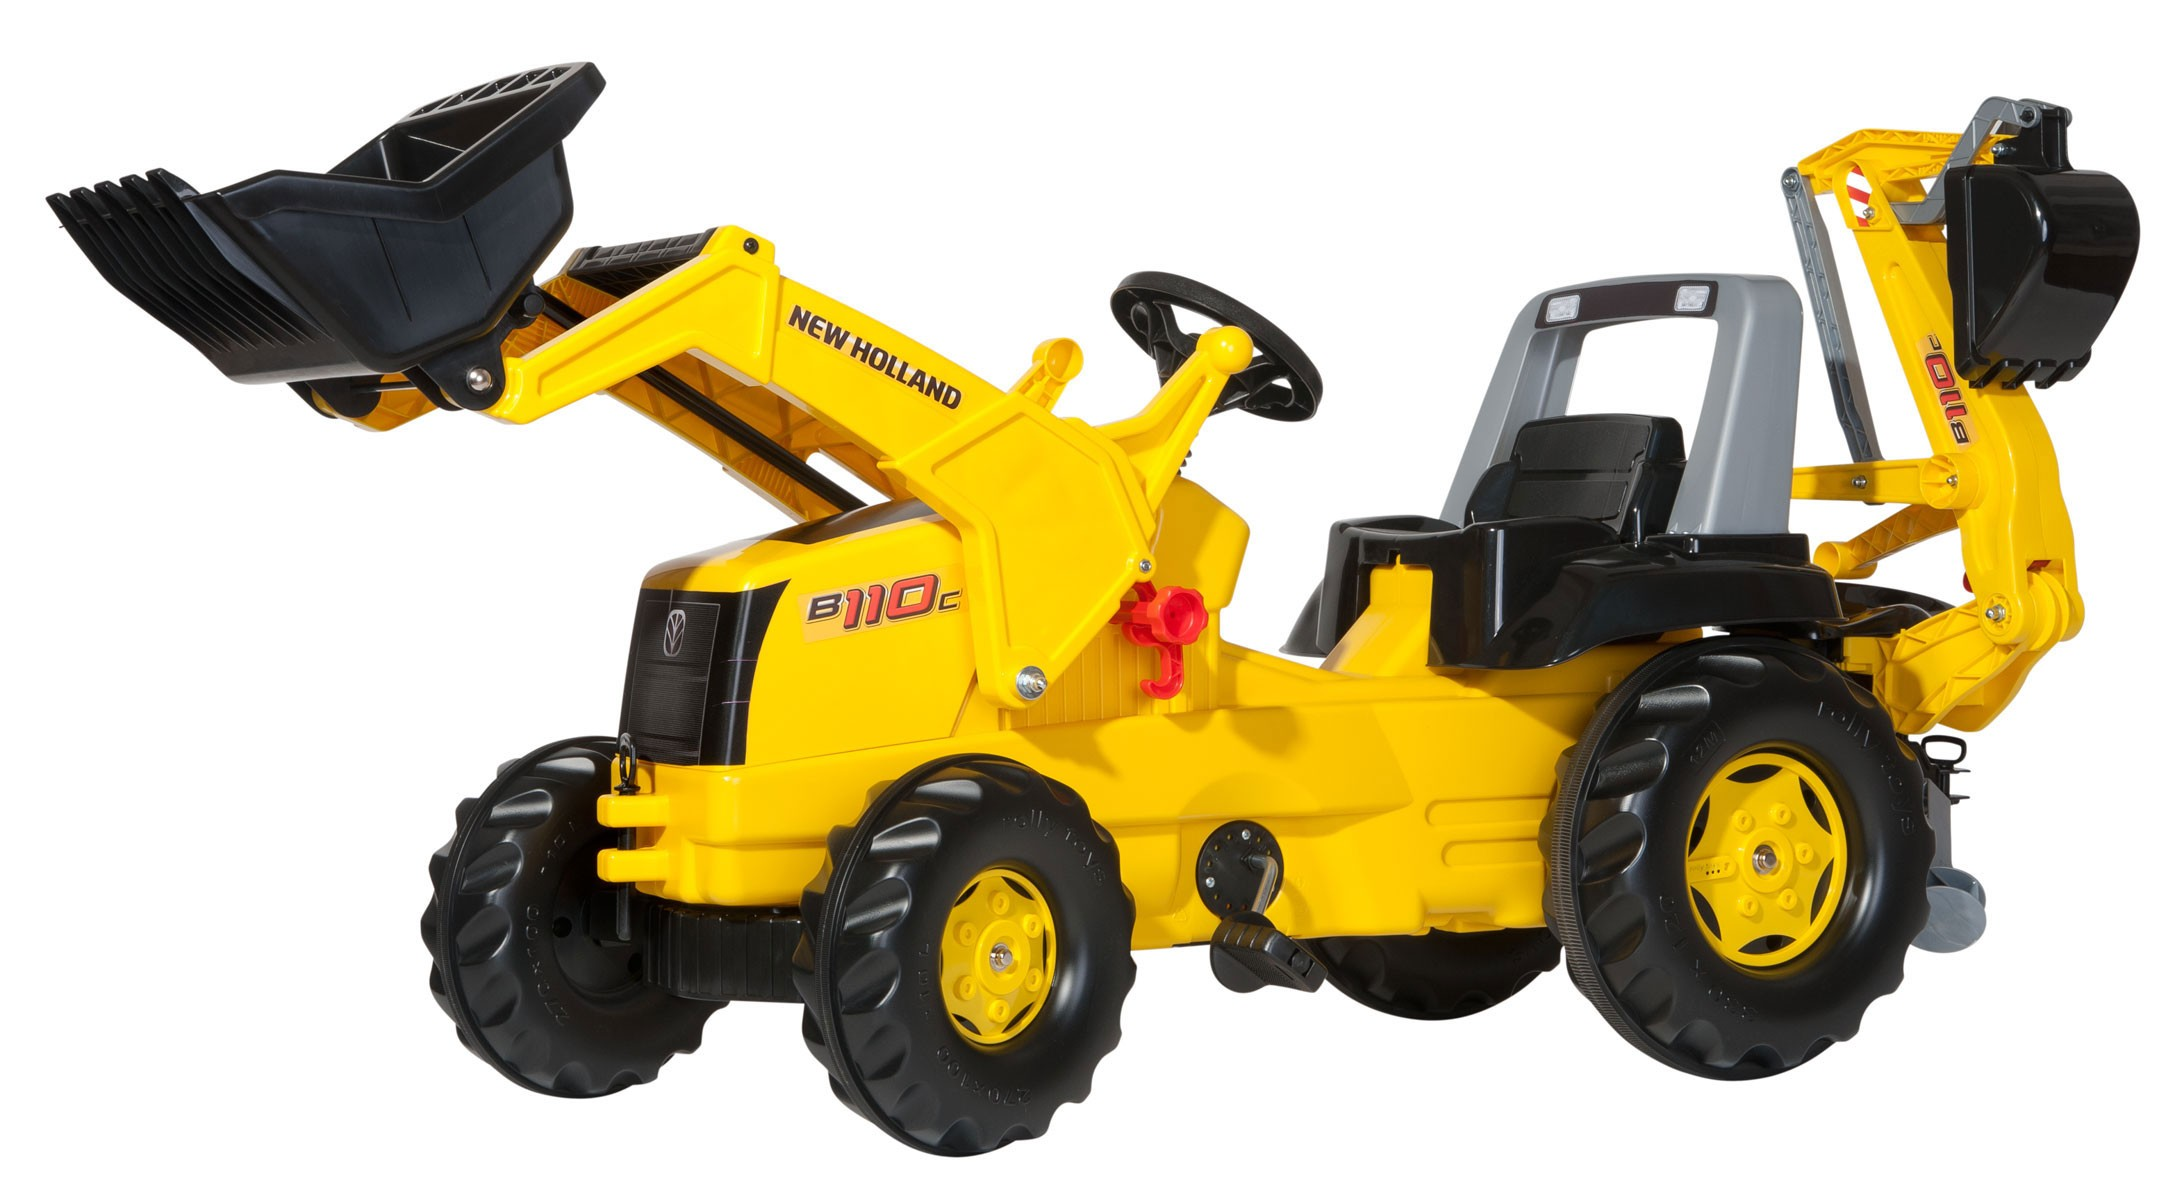 Trettraktor rolly Junior New Holland Construction - Rolly Toys Bild 1